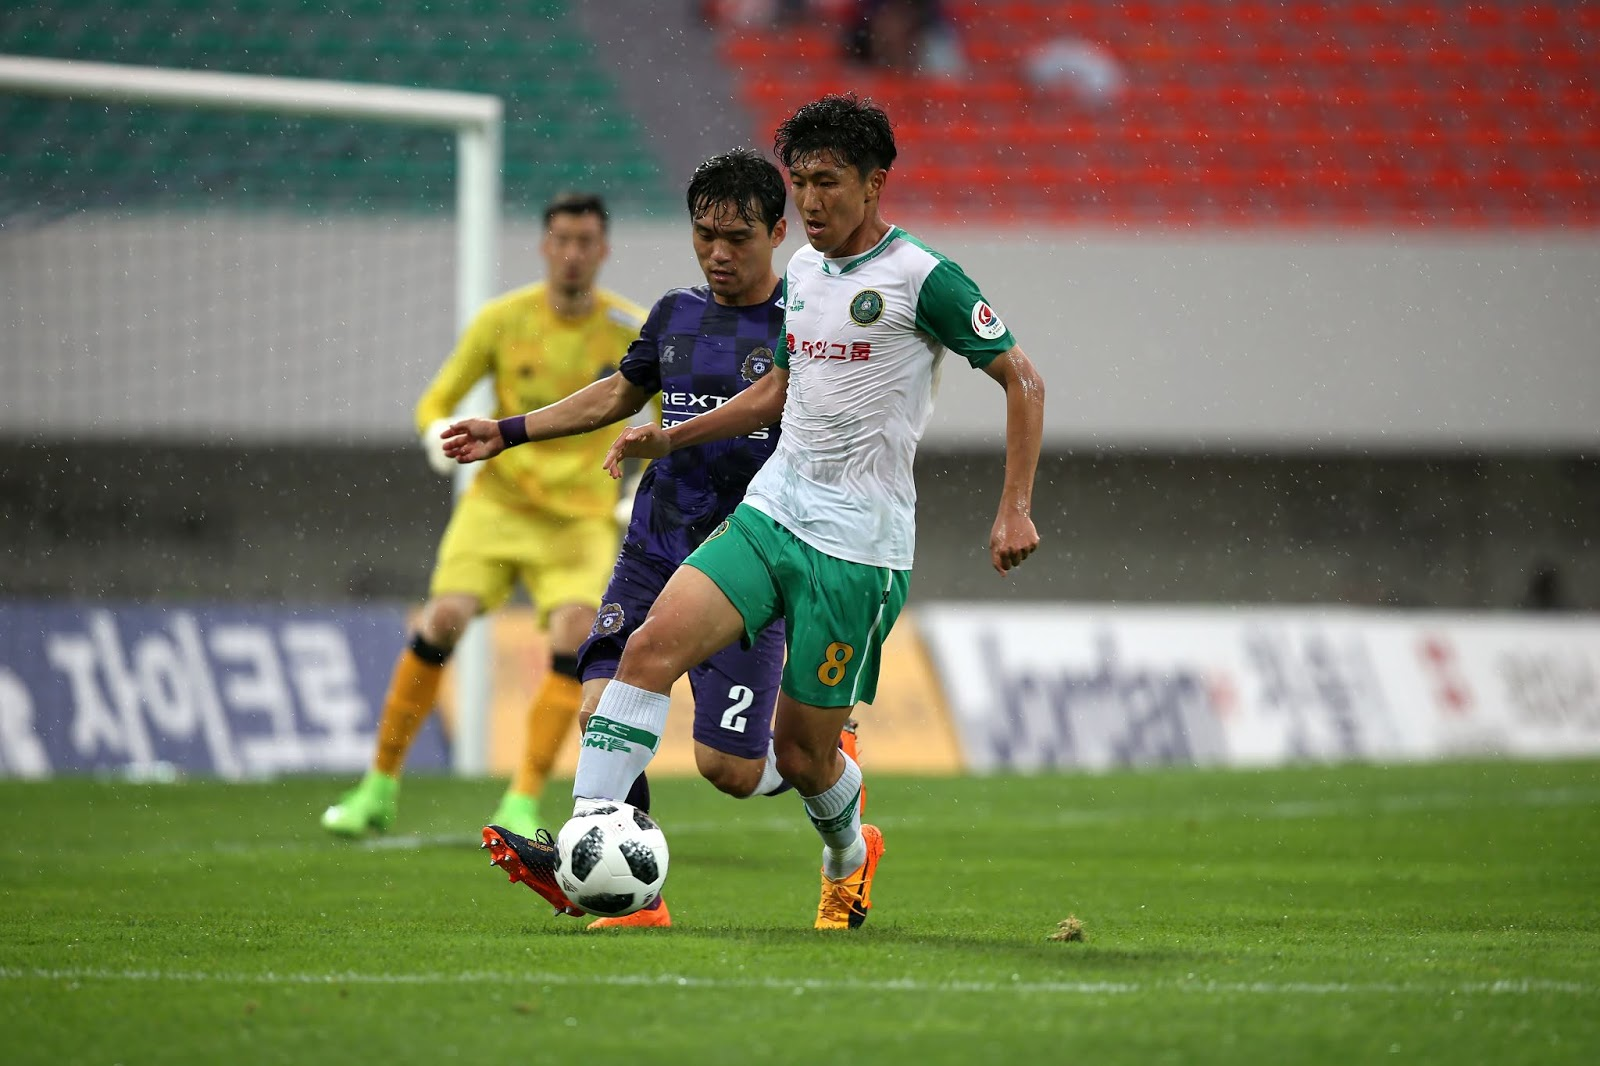 Preview: Ansan Greeners vs Daejeon Citizen K League 2 Round 1 Jang Hyeok-jin